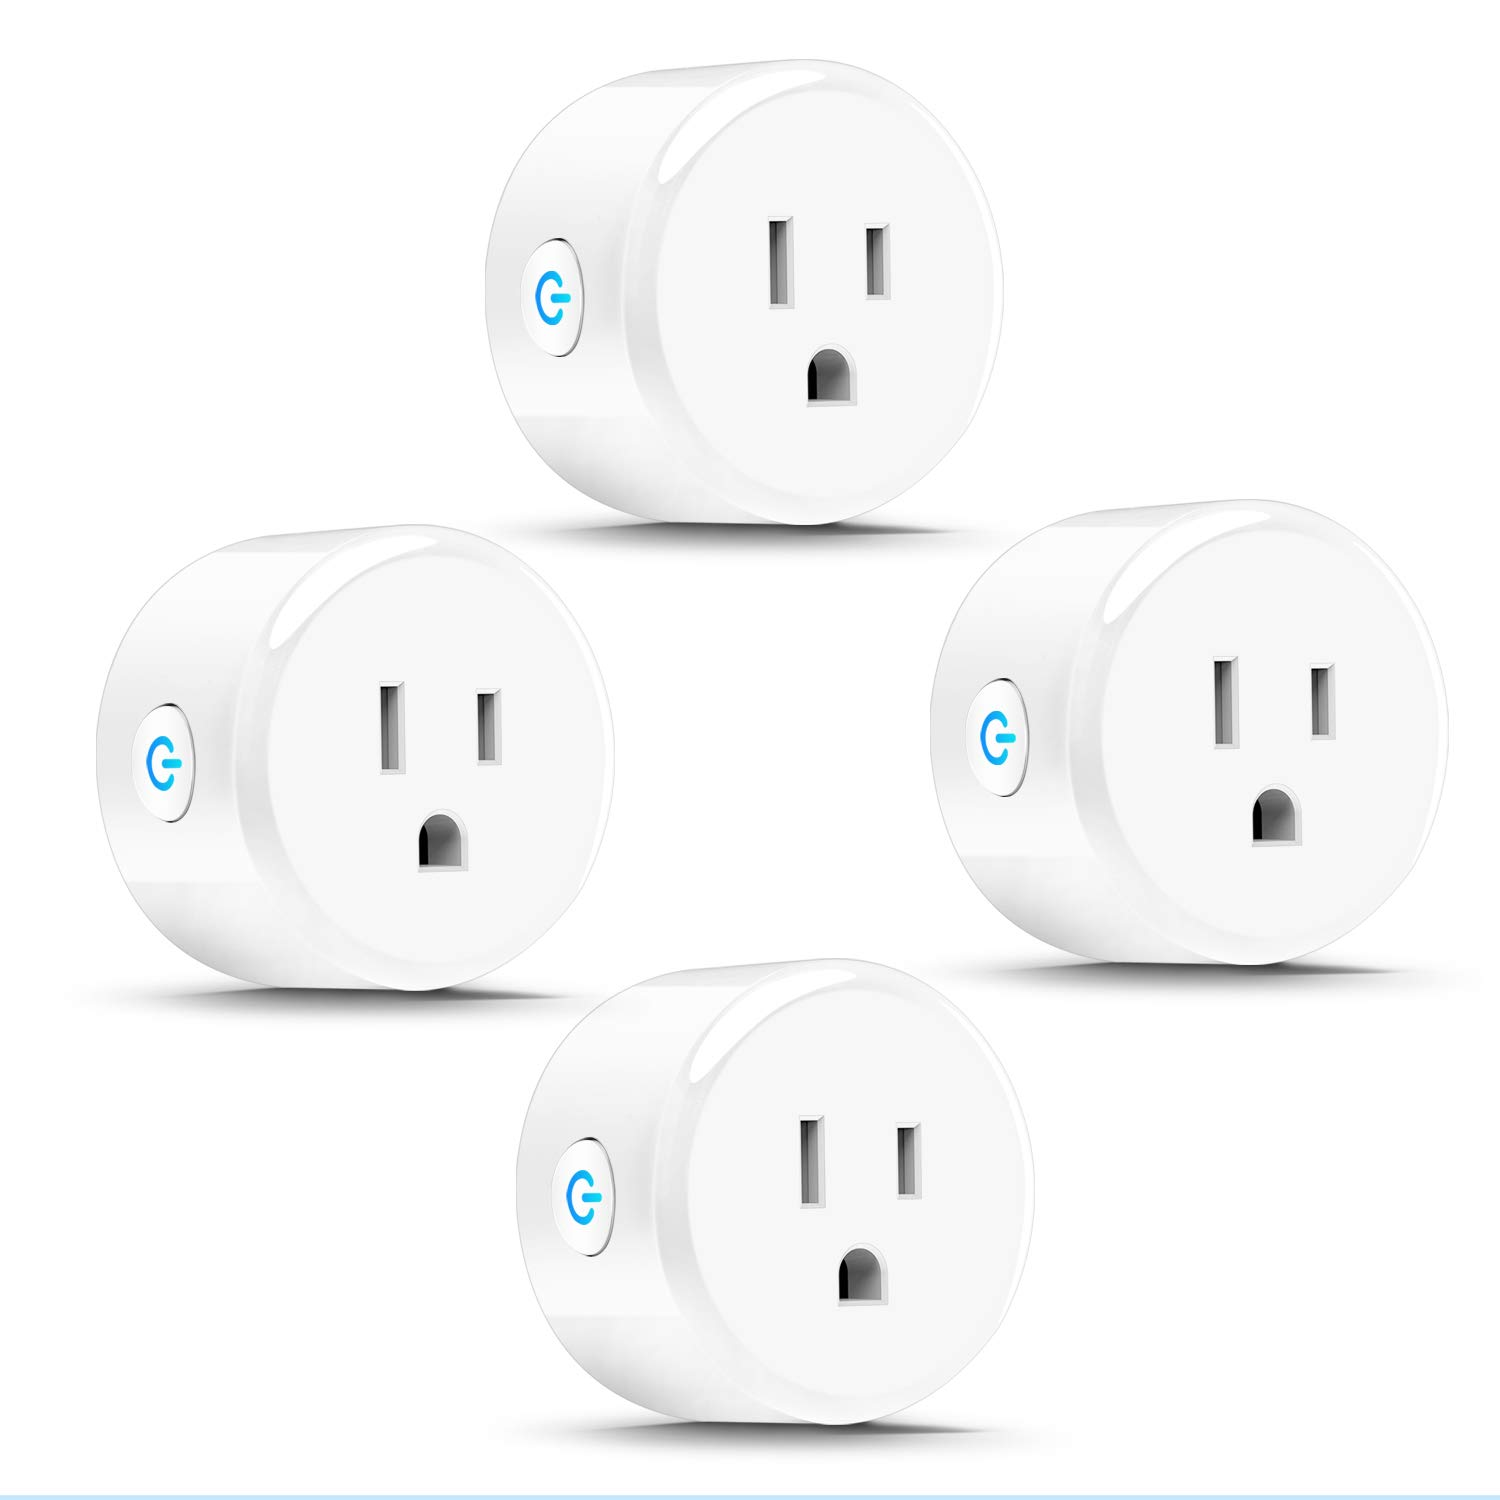 Anbes DL40002883 Wi-Fi Smart Plug Mini Outlet Socket Works with Amazon Alexa Echo, Google Home and Ifttt, Etl and Fcc Listed, No Hub Required (4 Pack)